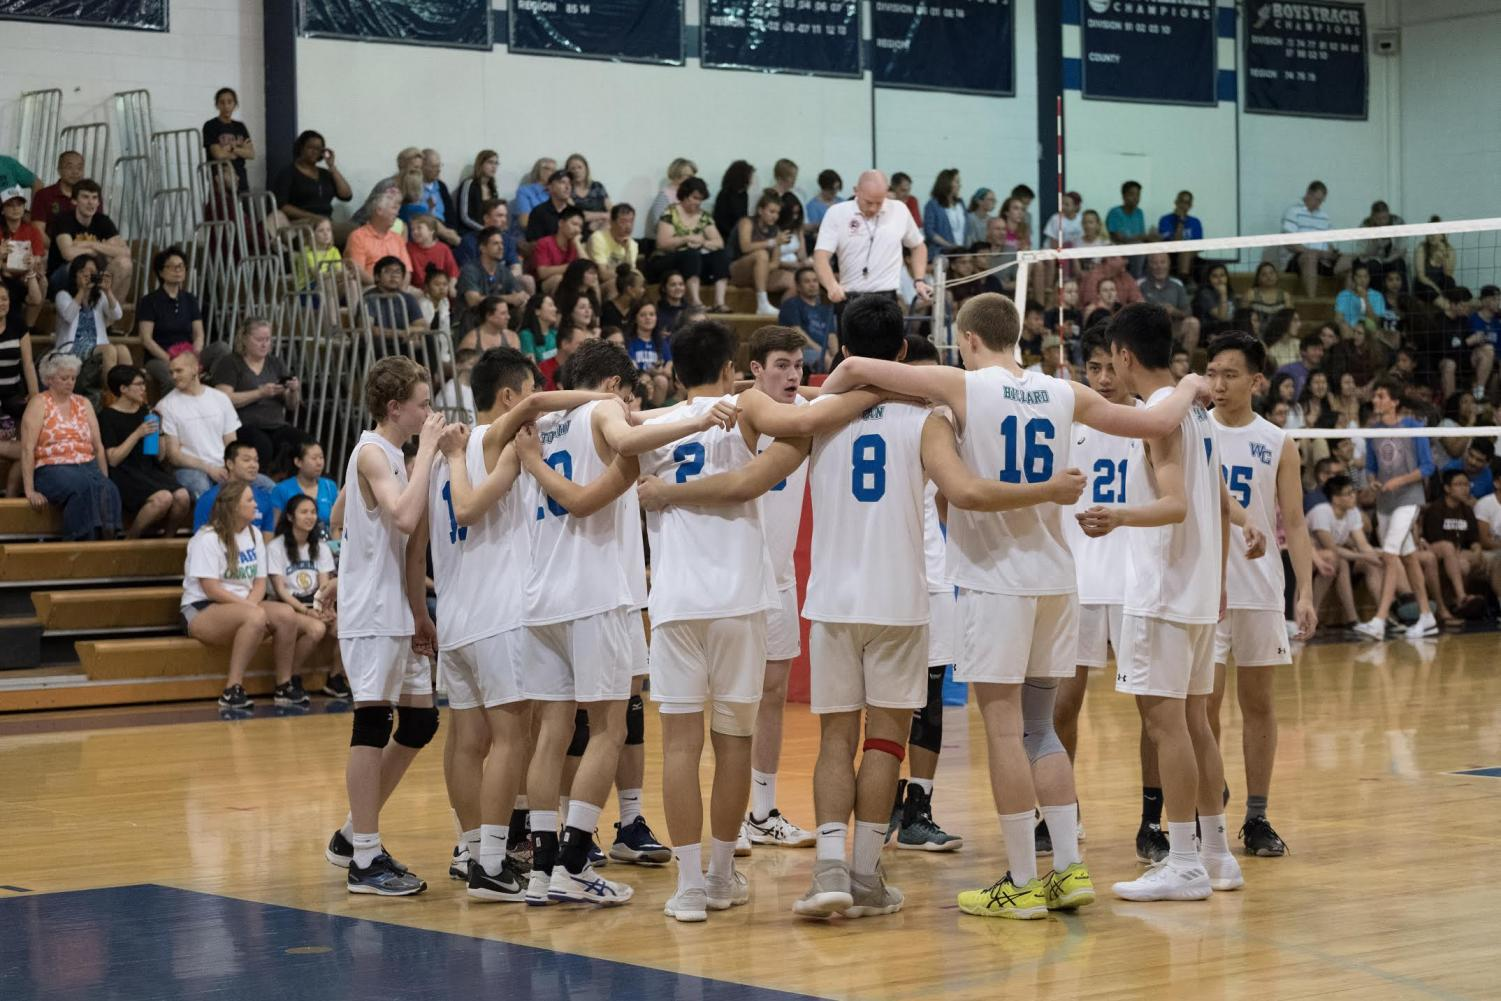 The boys volleyball team at county finals on May 15, 2018 against Walter Johnson. WCHS lost 3-1 last year but hope to defeat them in the championship this year.